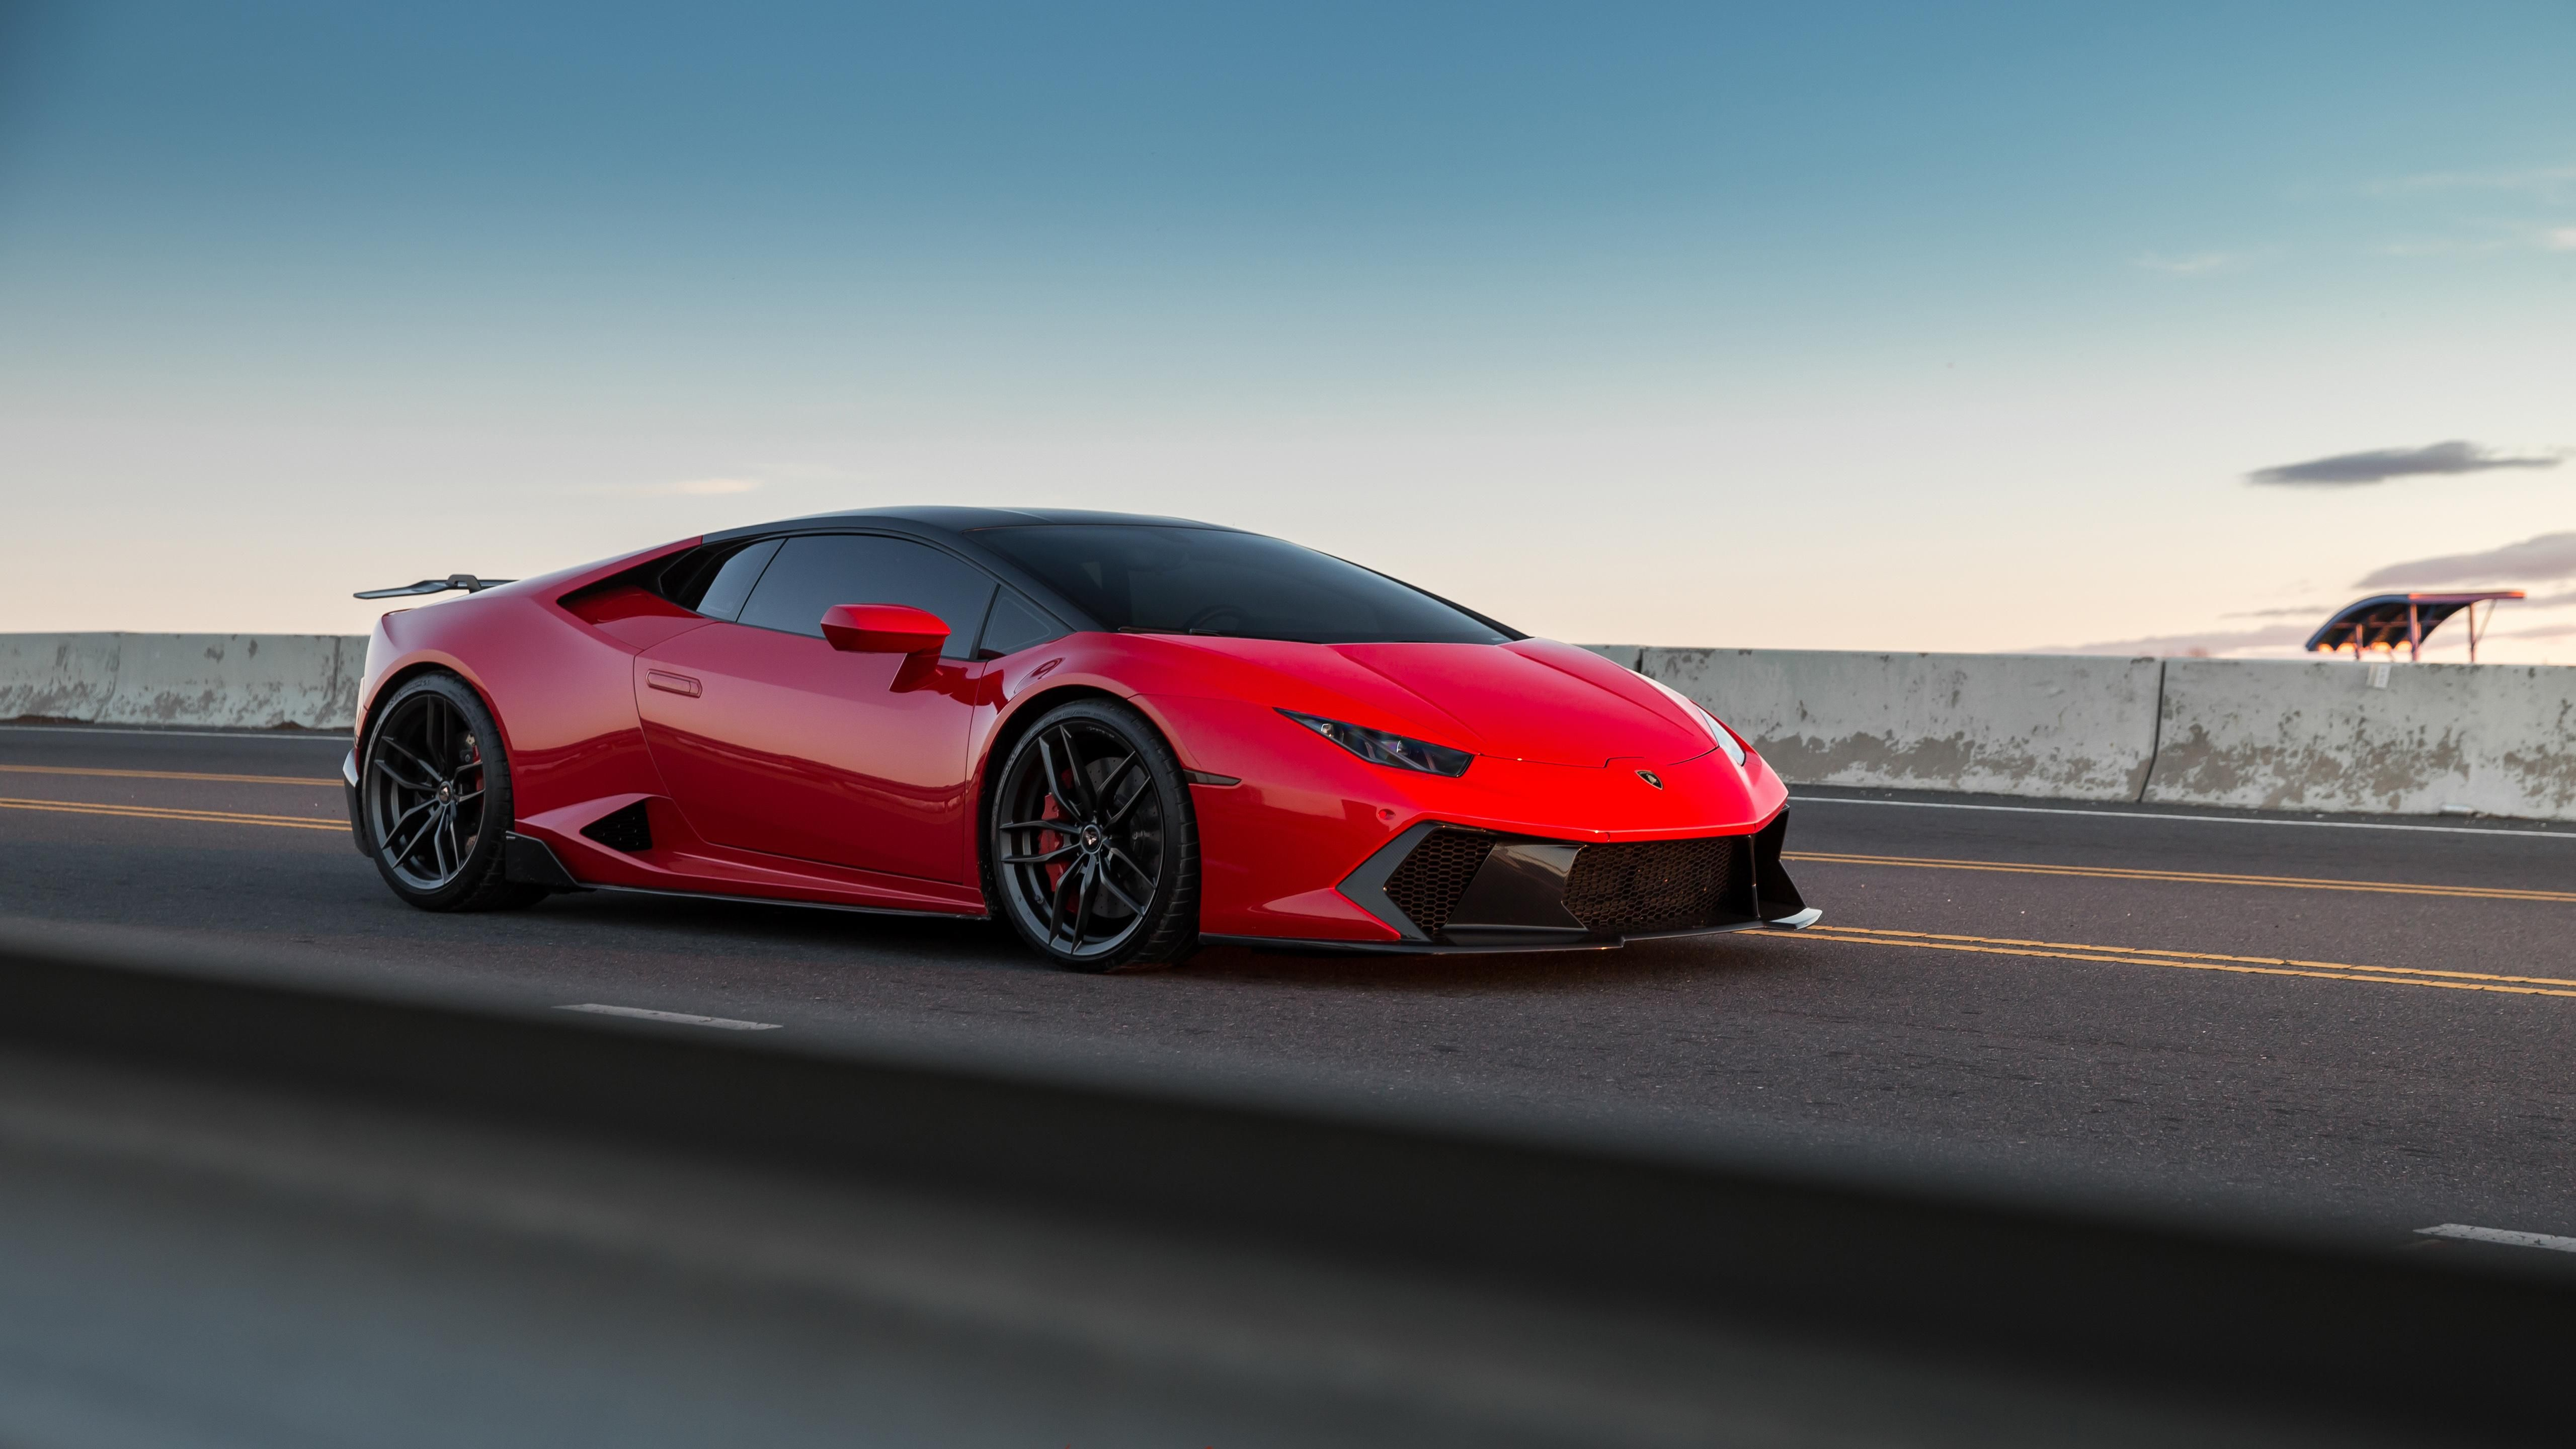 Lamborghini Hurucan - Red & Black looks sick ...